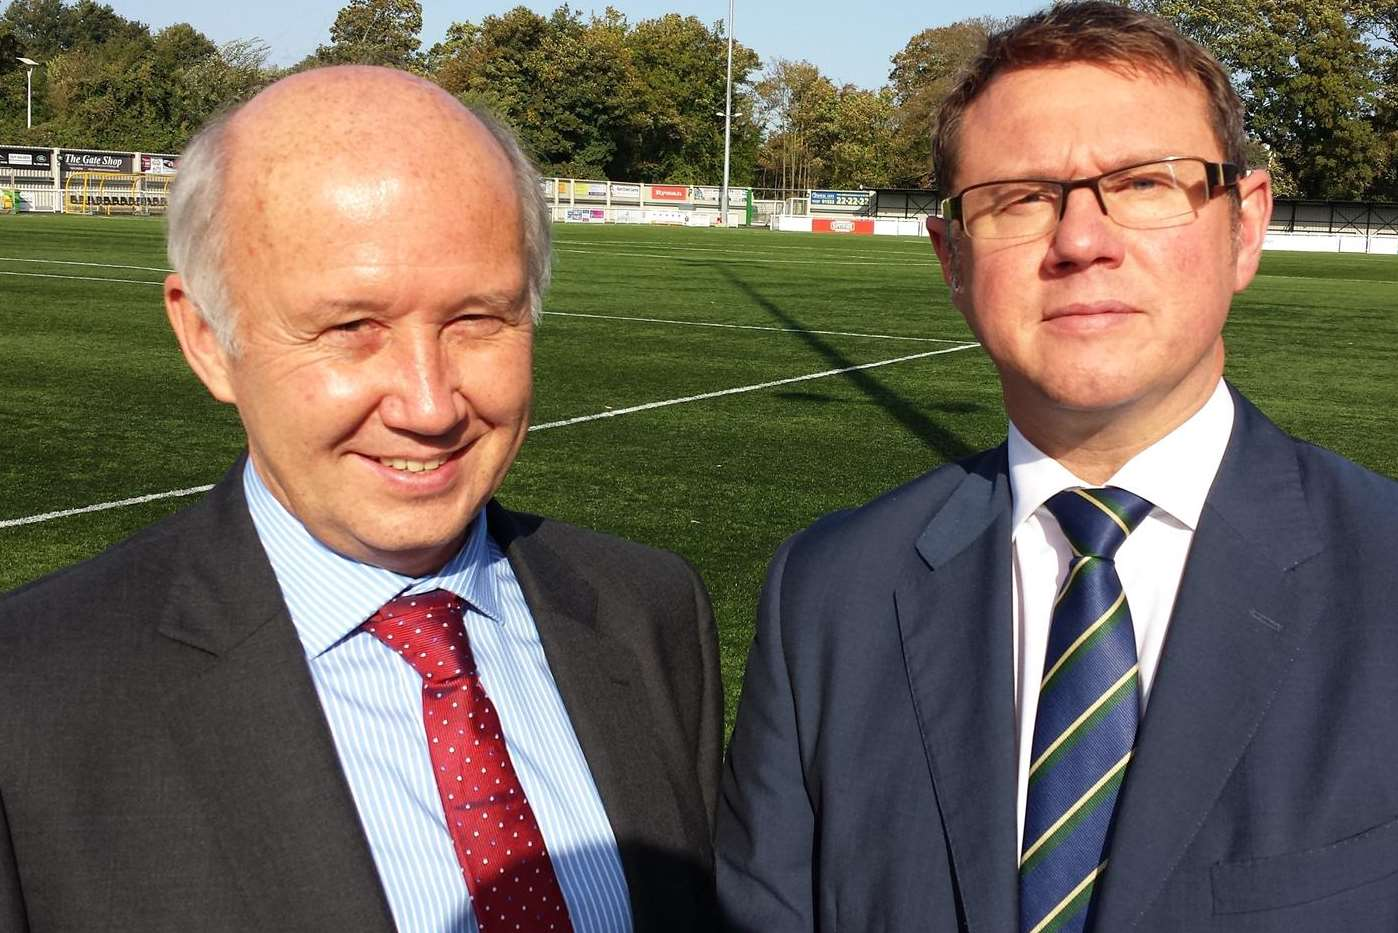 Chris Blundell, left, of Golding Homes and Huw Edwards of Barton Wilmore